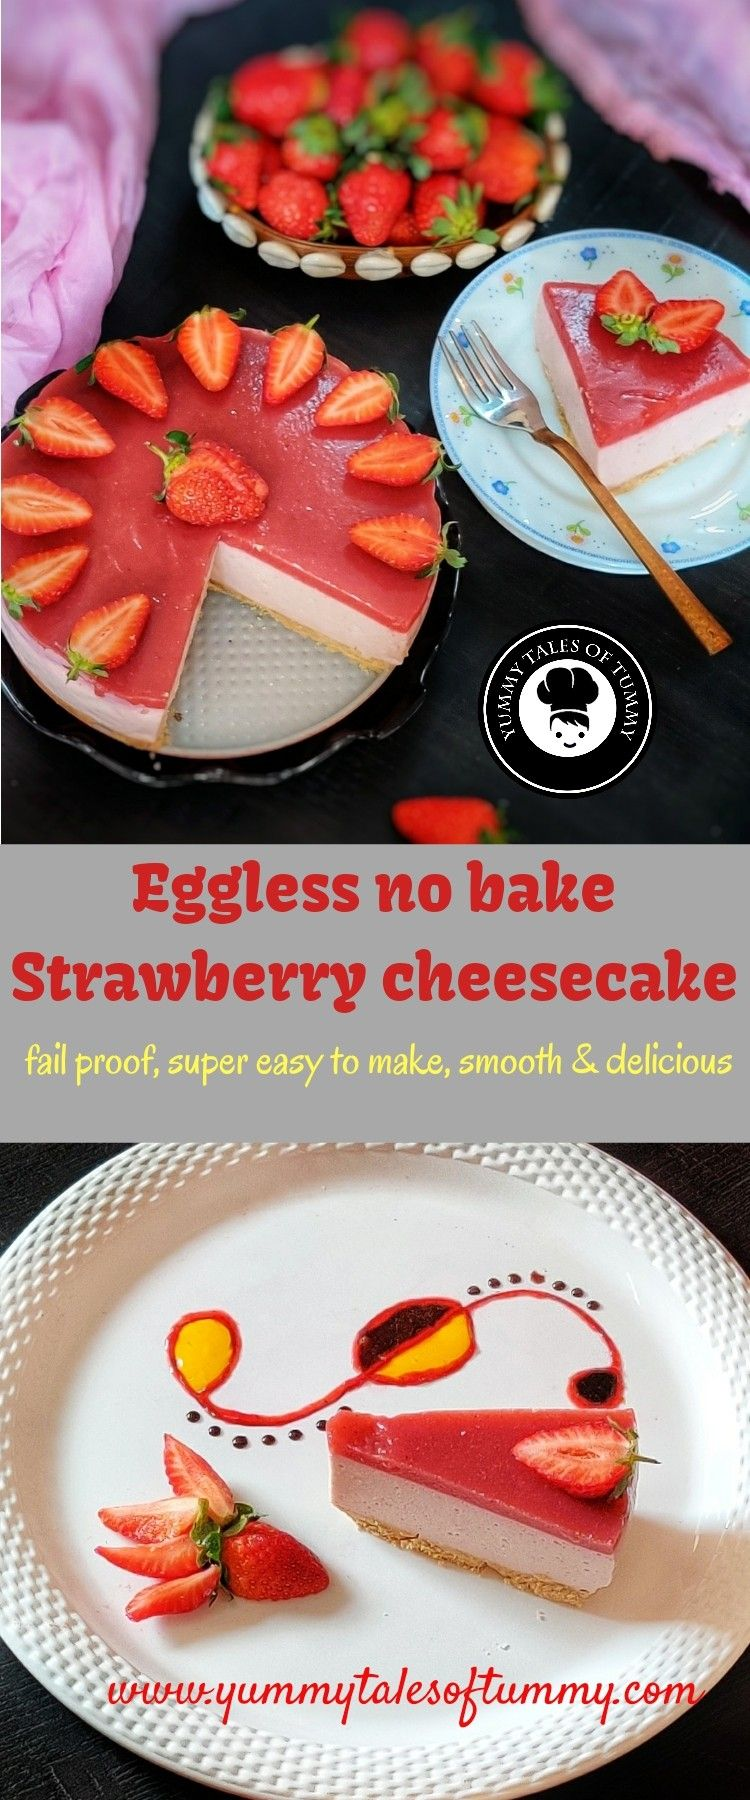 Eggless no bake strawberry cheesecake in 2020 baked